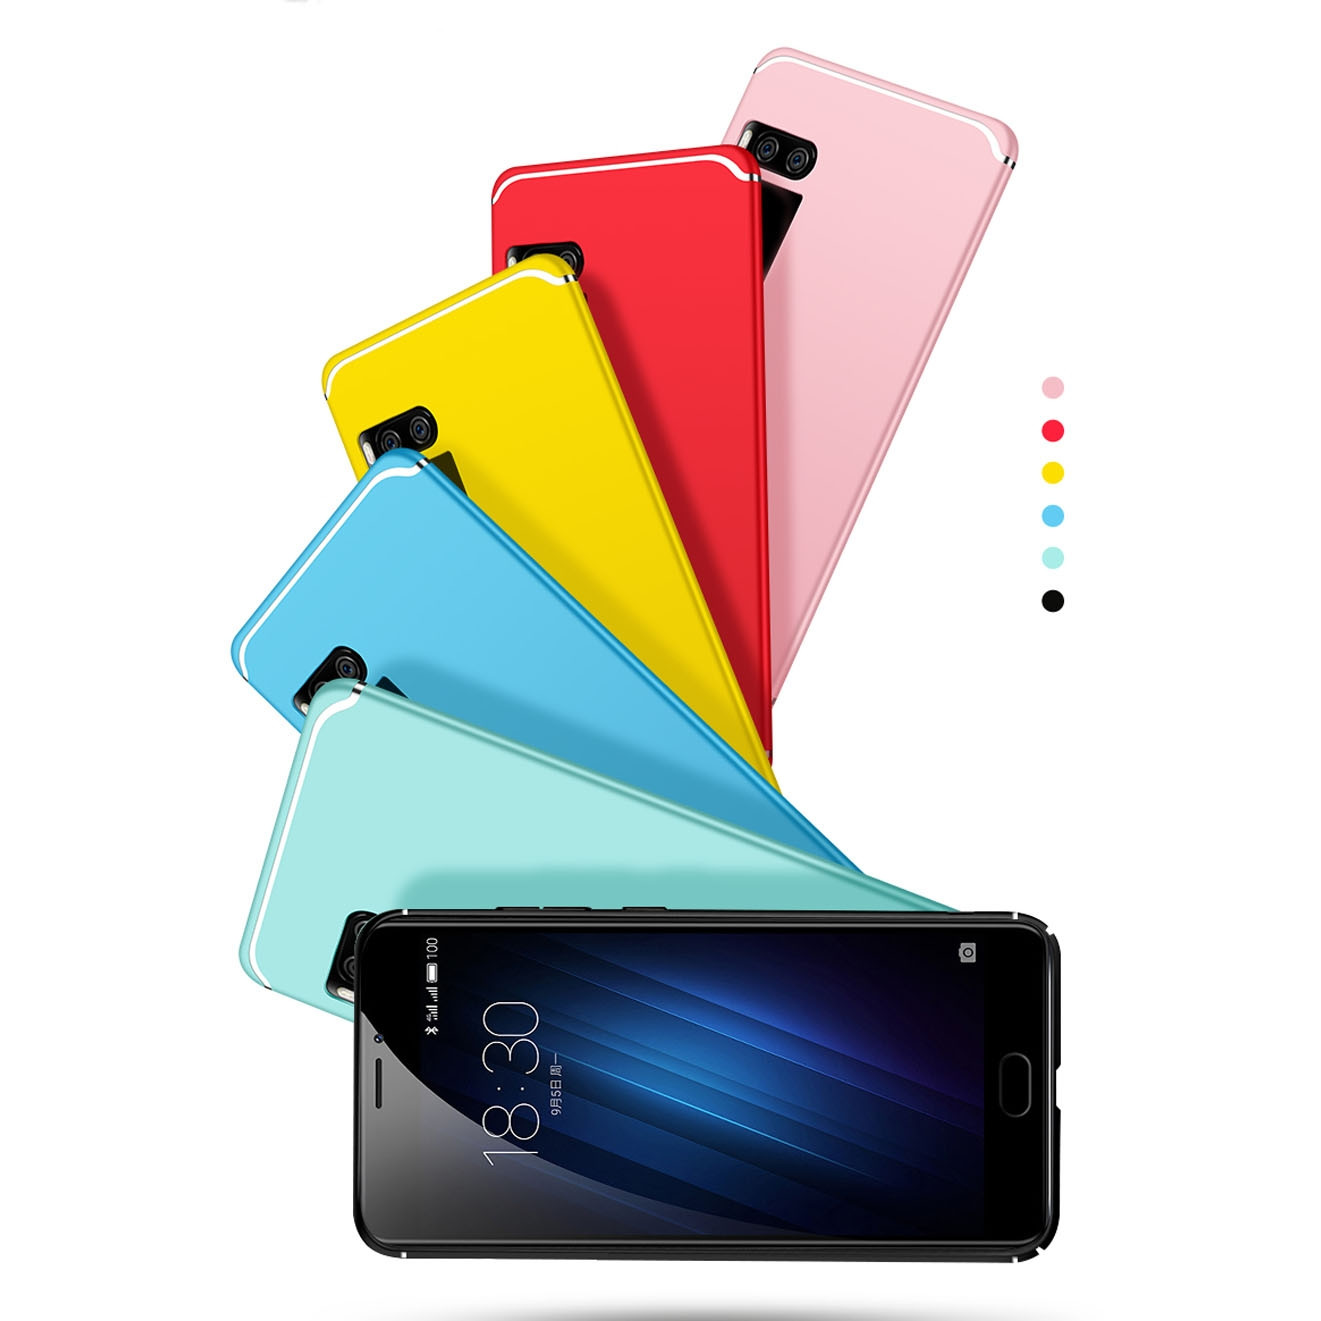 Colorful Full Surround Micro Frosted PC Hard Cover Case For Meizu Pro 7 / Pro 7 Plus